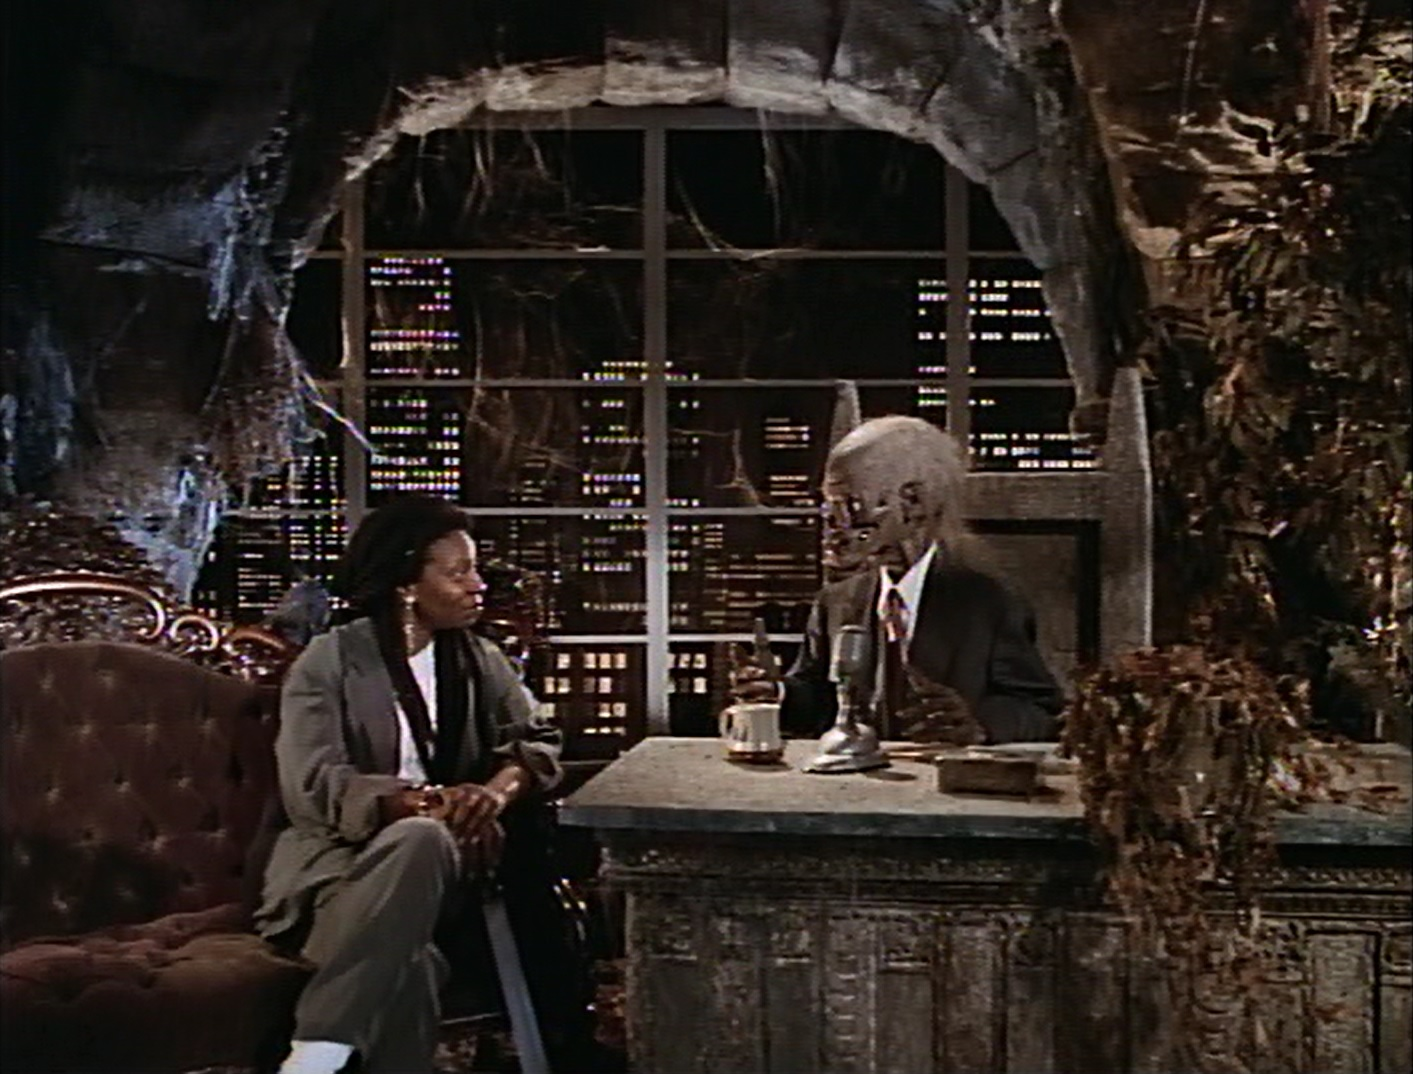 Tales from the Crypt Episode 30: Dead Wait - Midnite Reviews